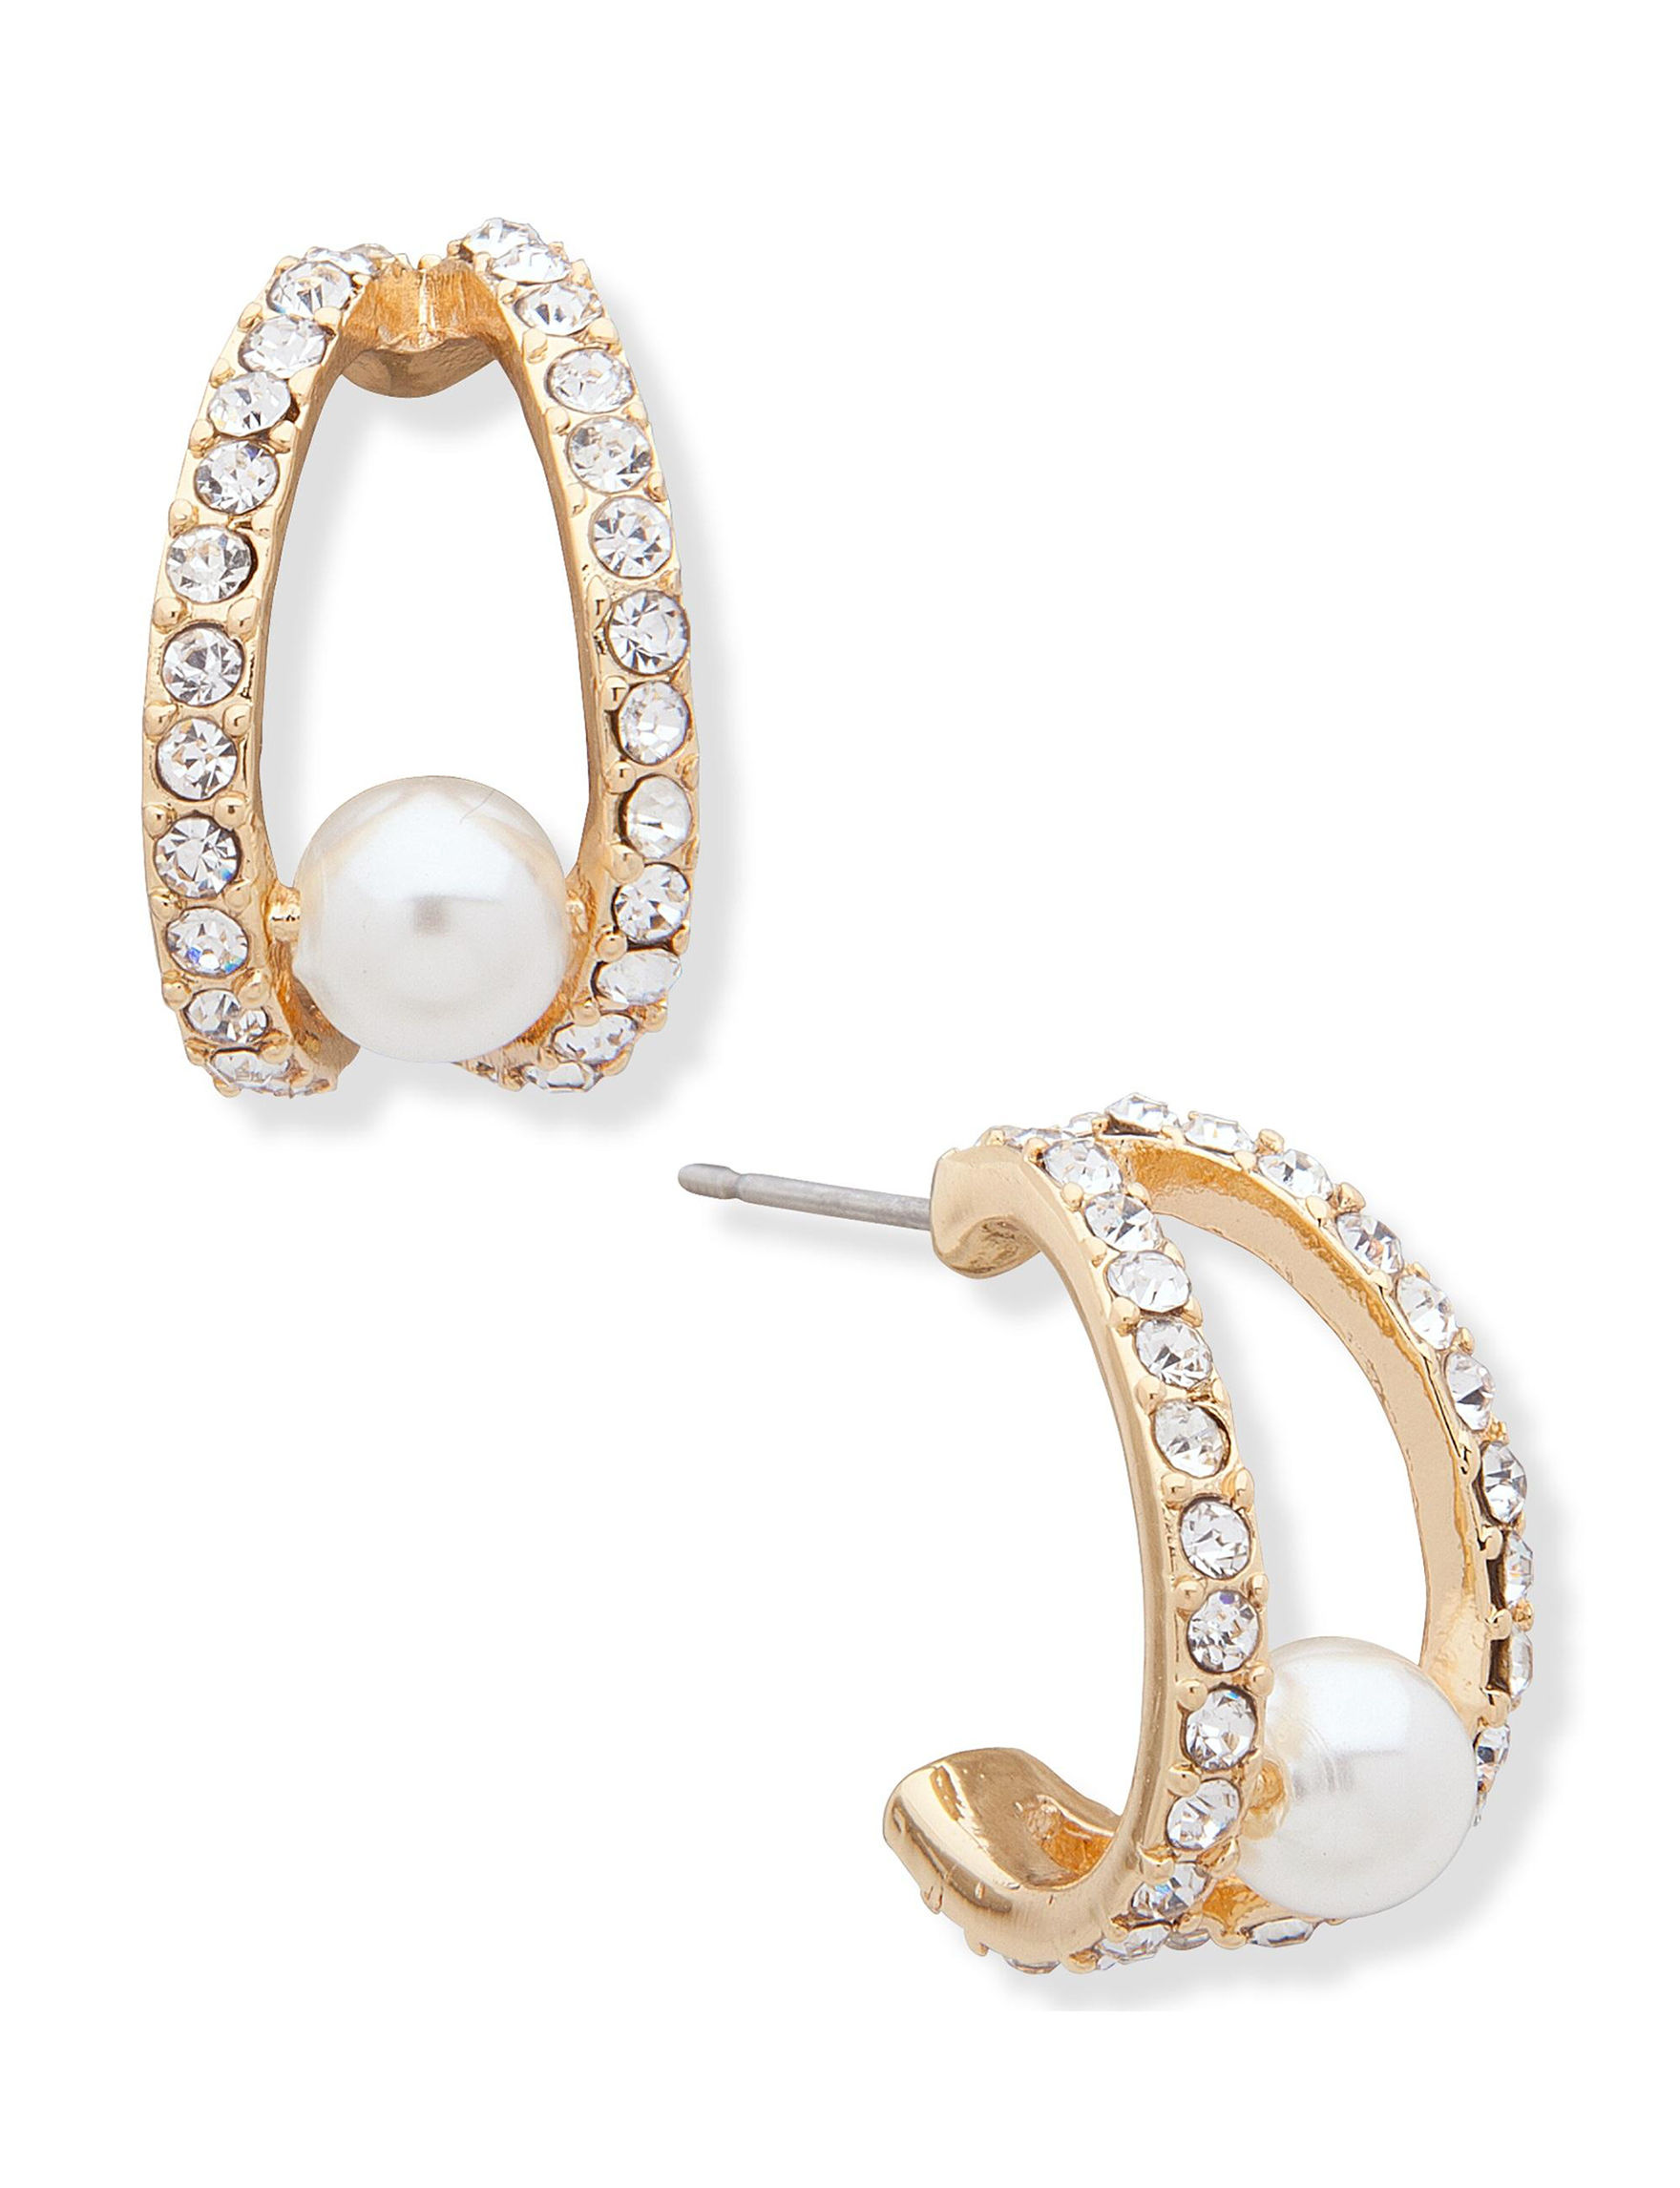 You're Invited Gold / Pearl Hoops Earrings Fashion Jewelry